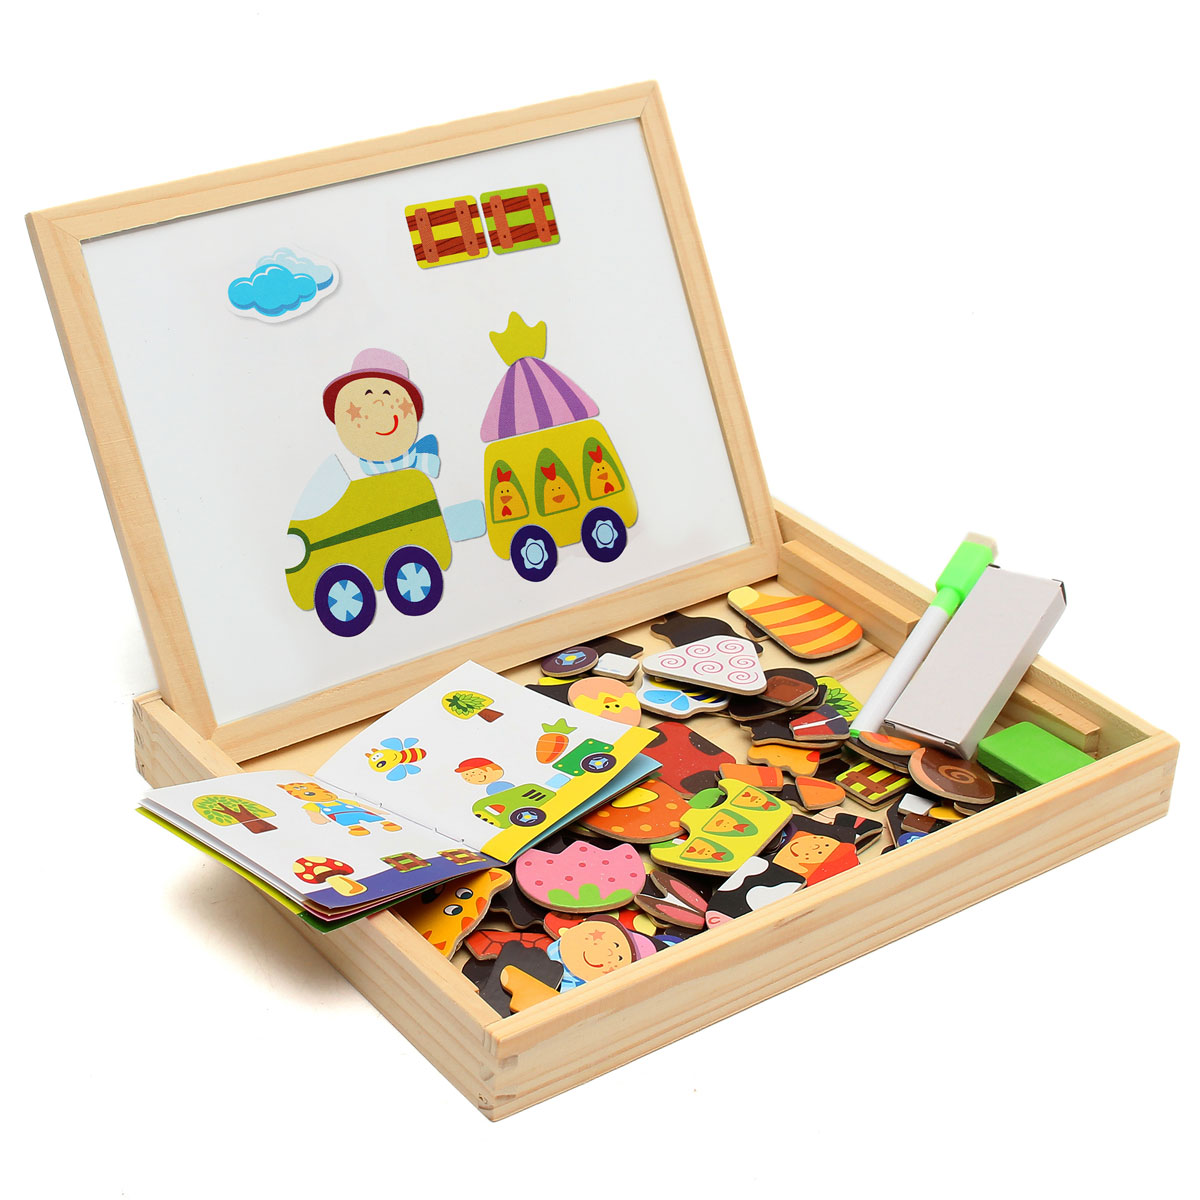 New-Arrival-Drawing-Writing-Board-Magnetic-Puzzle-Double-Easel-Kid-Wooden-Toy-Gift-Children-Intelligence-Development-Toy-1